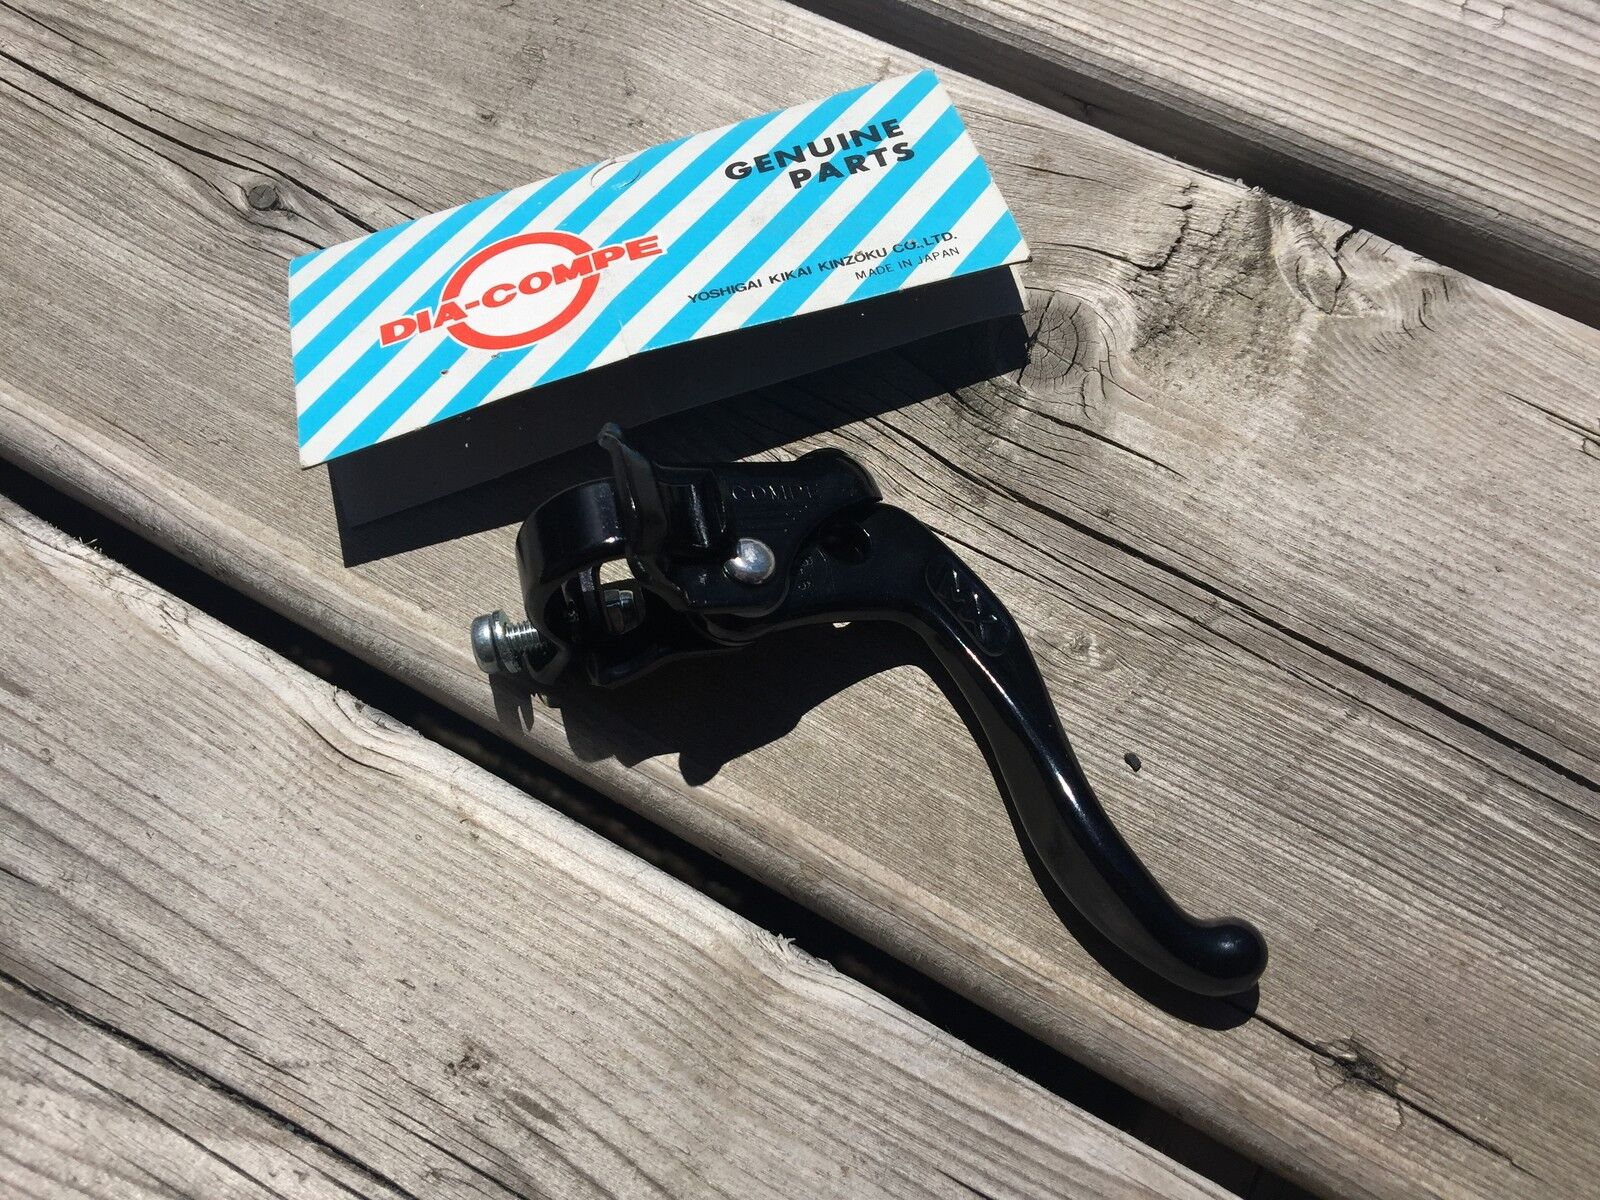 OLD  SCHOOL BMX DIA-COMPE MX BRAKE LEVER NOS MX 123 LEVER 22MM OLDSCHOOL NIB  sale online discount low price